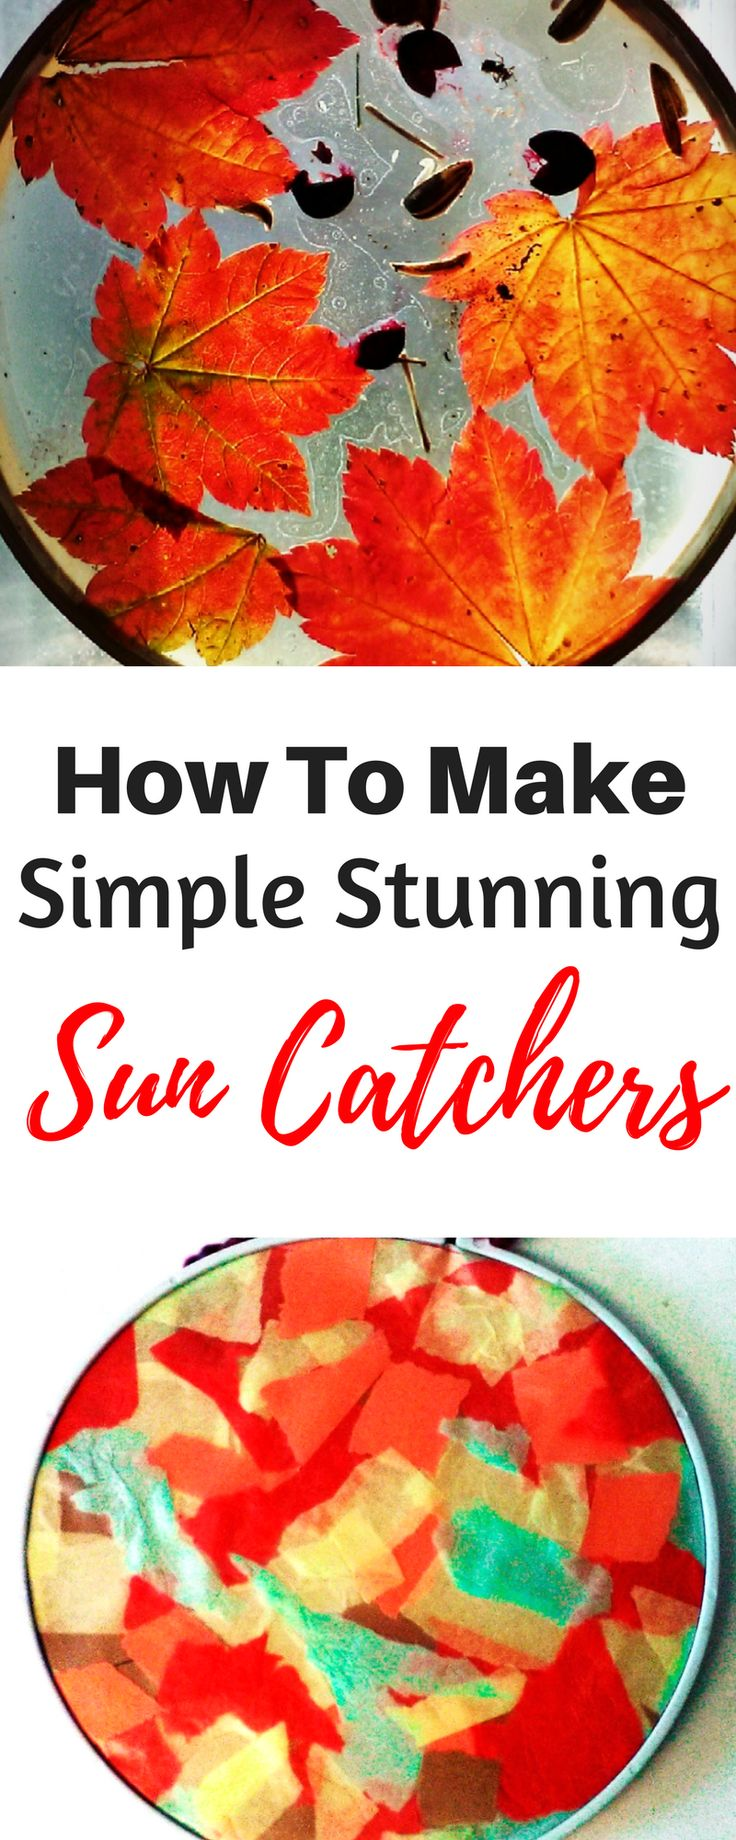 How to make simple beautiful nature and tissue paper sun catchers! This gorgeous fall craft is so easy that it is absolutely perfect for kids to make this autumn for your window! This fun DIY craft is perfect for toddlers, preschool, and school aged children alike. What great ideas for an easy delightful fall craft.